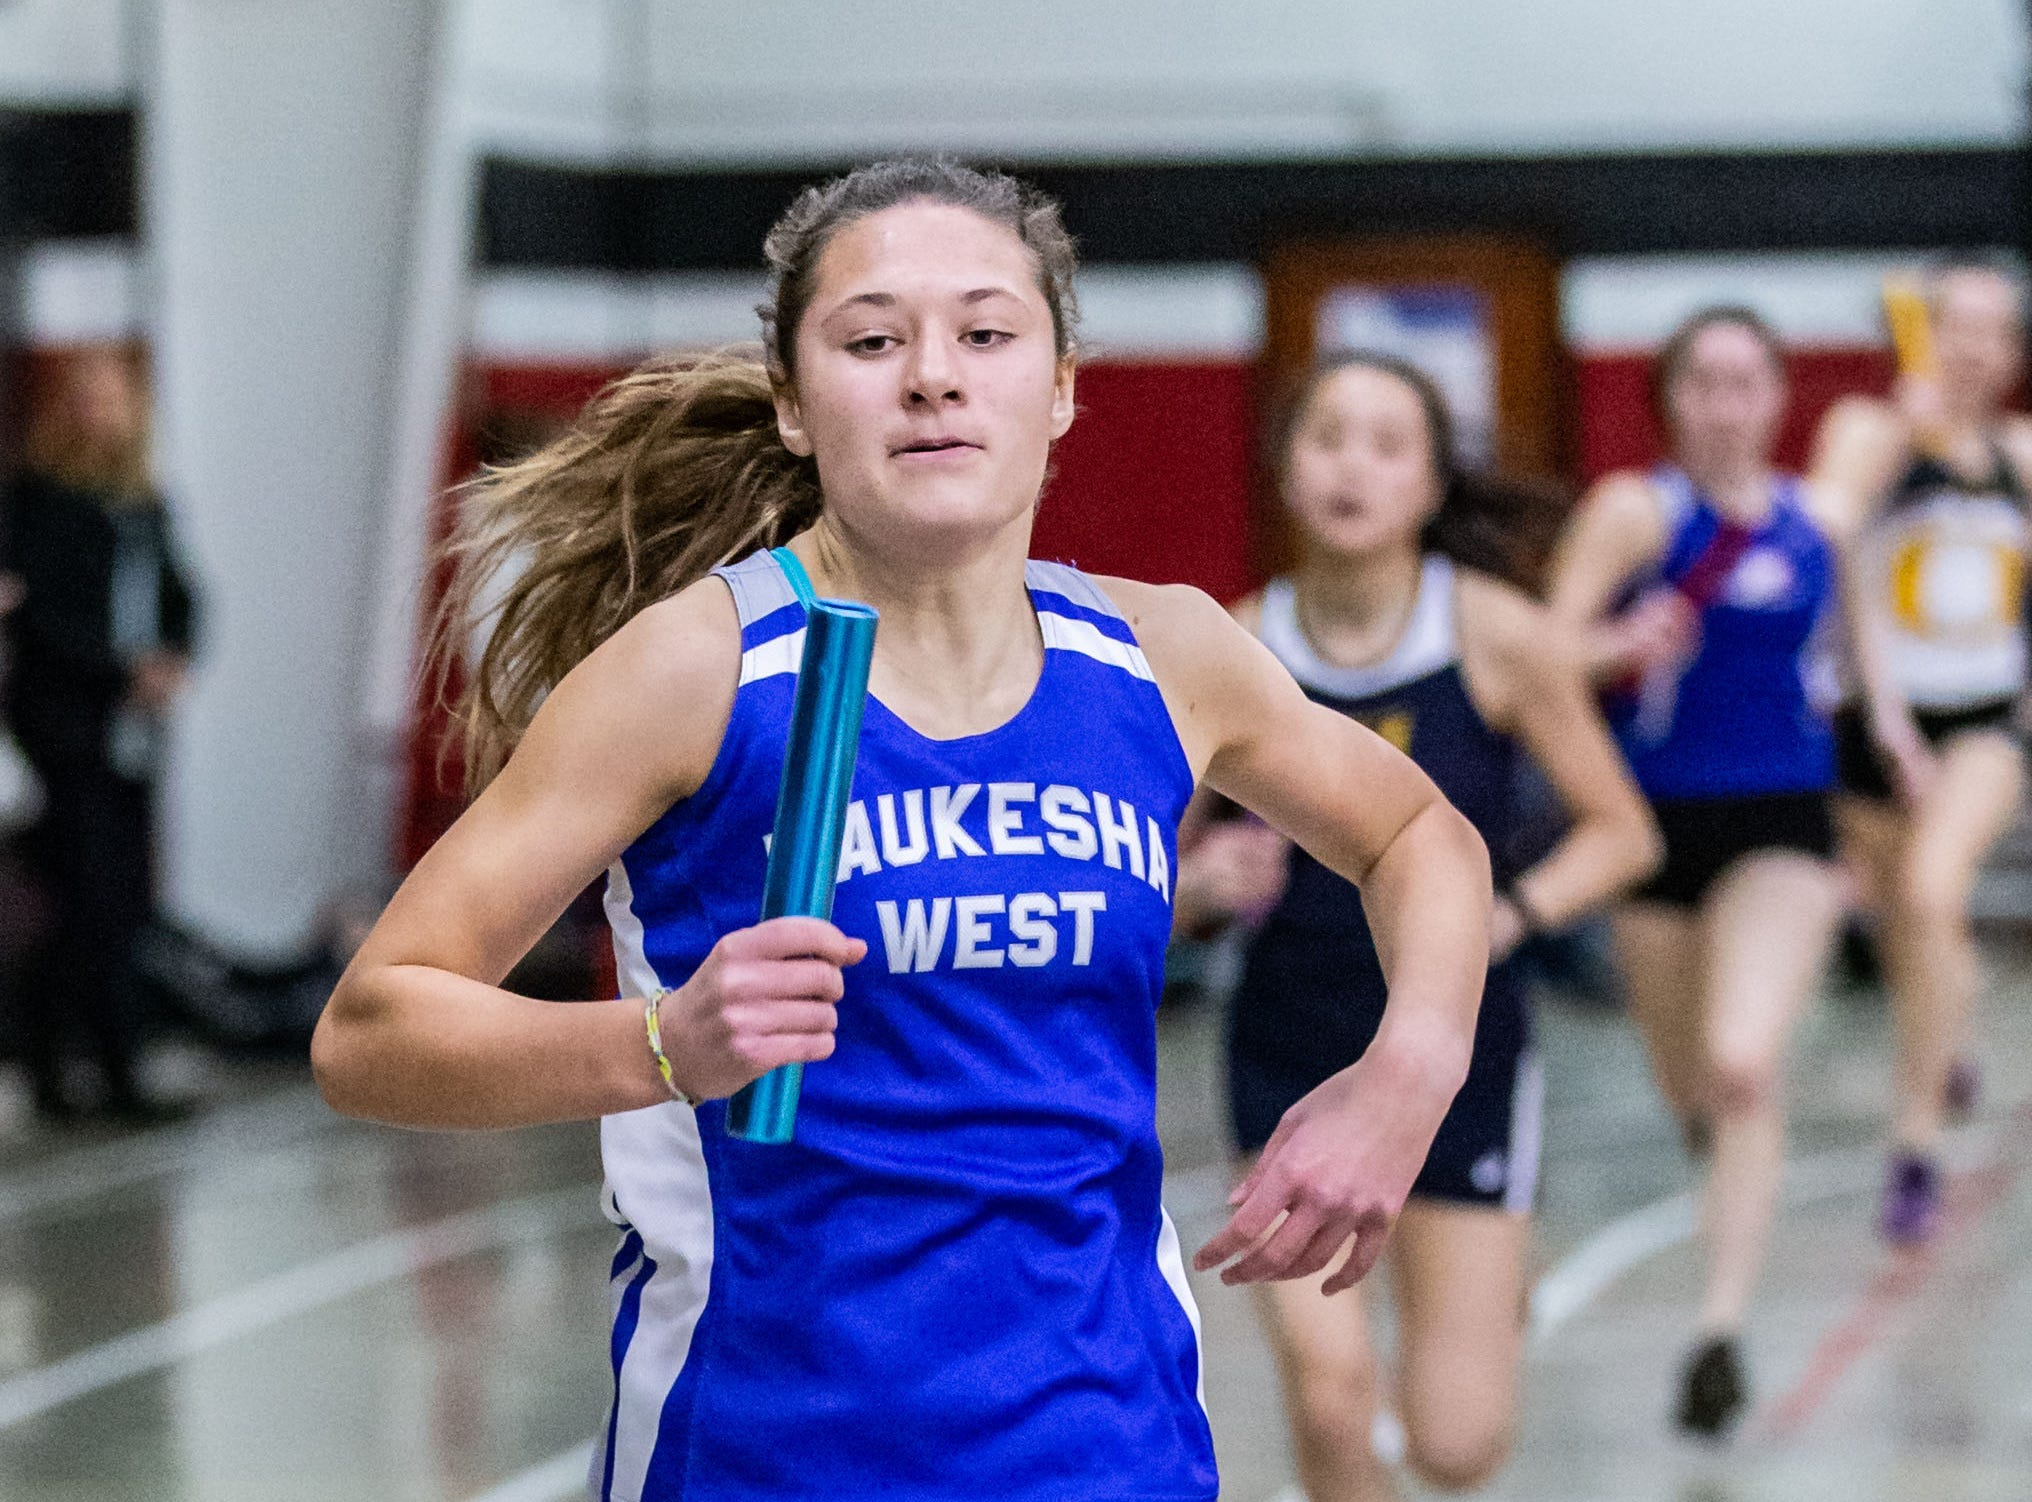 Waukesha West's Kaya Kuokkanen competes in the 4x440 yard relay at the Peter Rempe Cardinal Relays hosted by Waukesha South on Thursday, March 21, 2019.